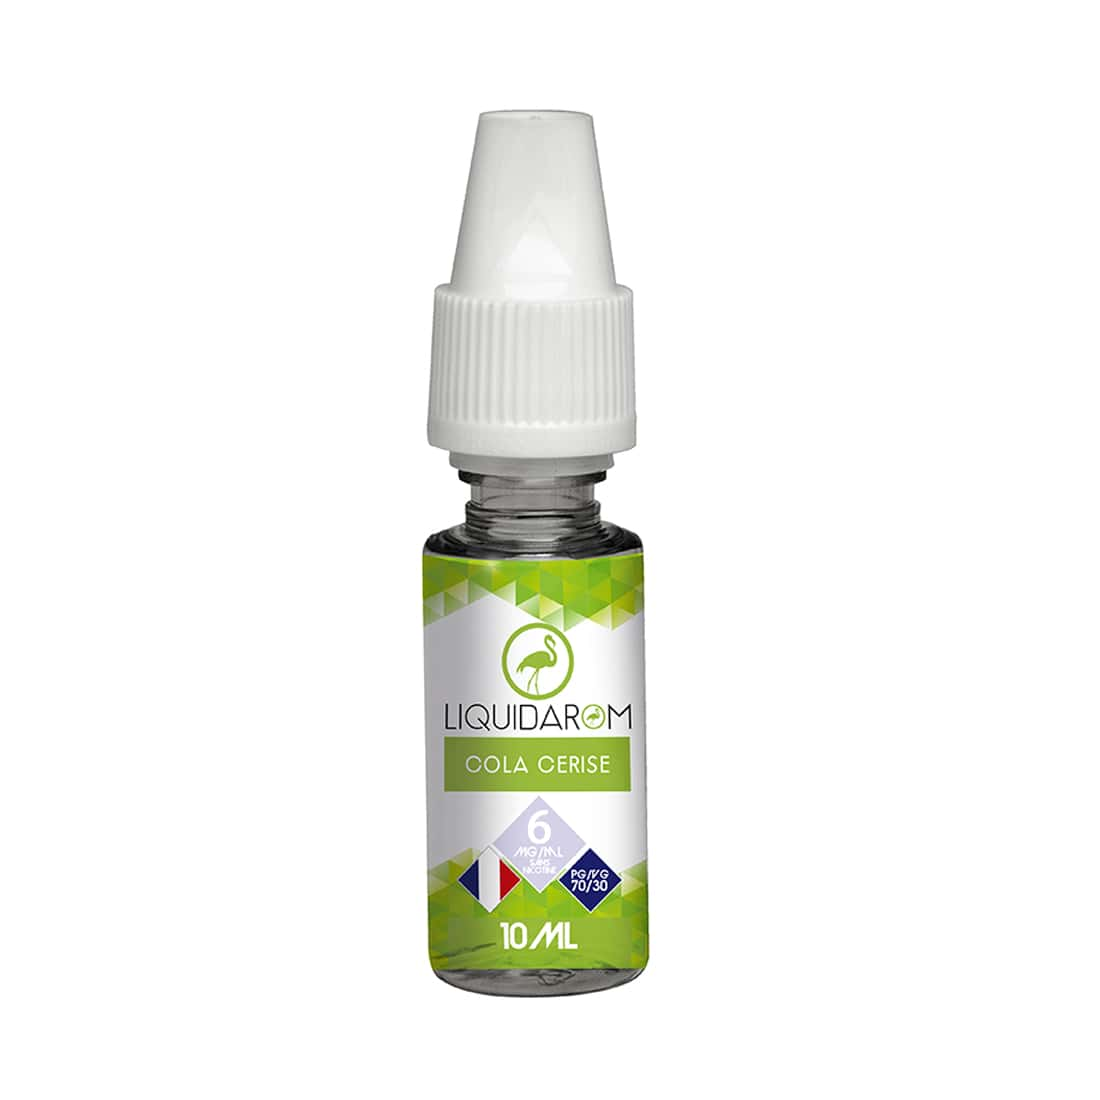 Photo de La Bonne Affaire - E liquide Liquidarom Cola Cerise 6 mg